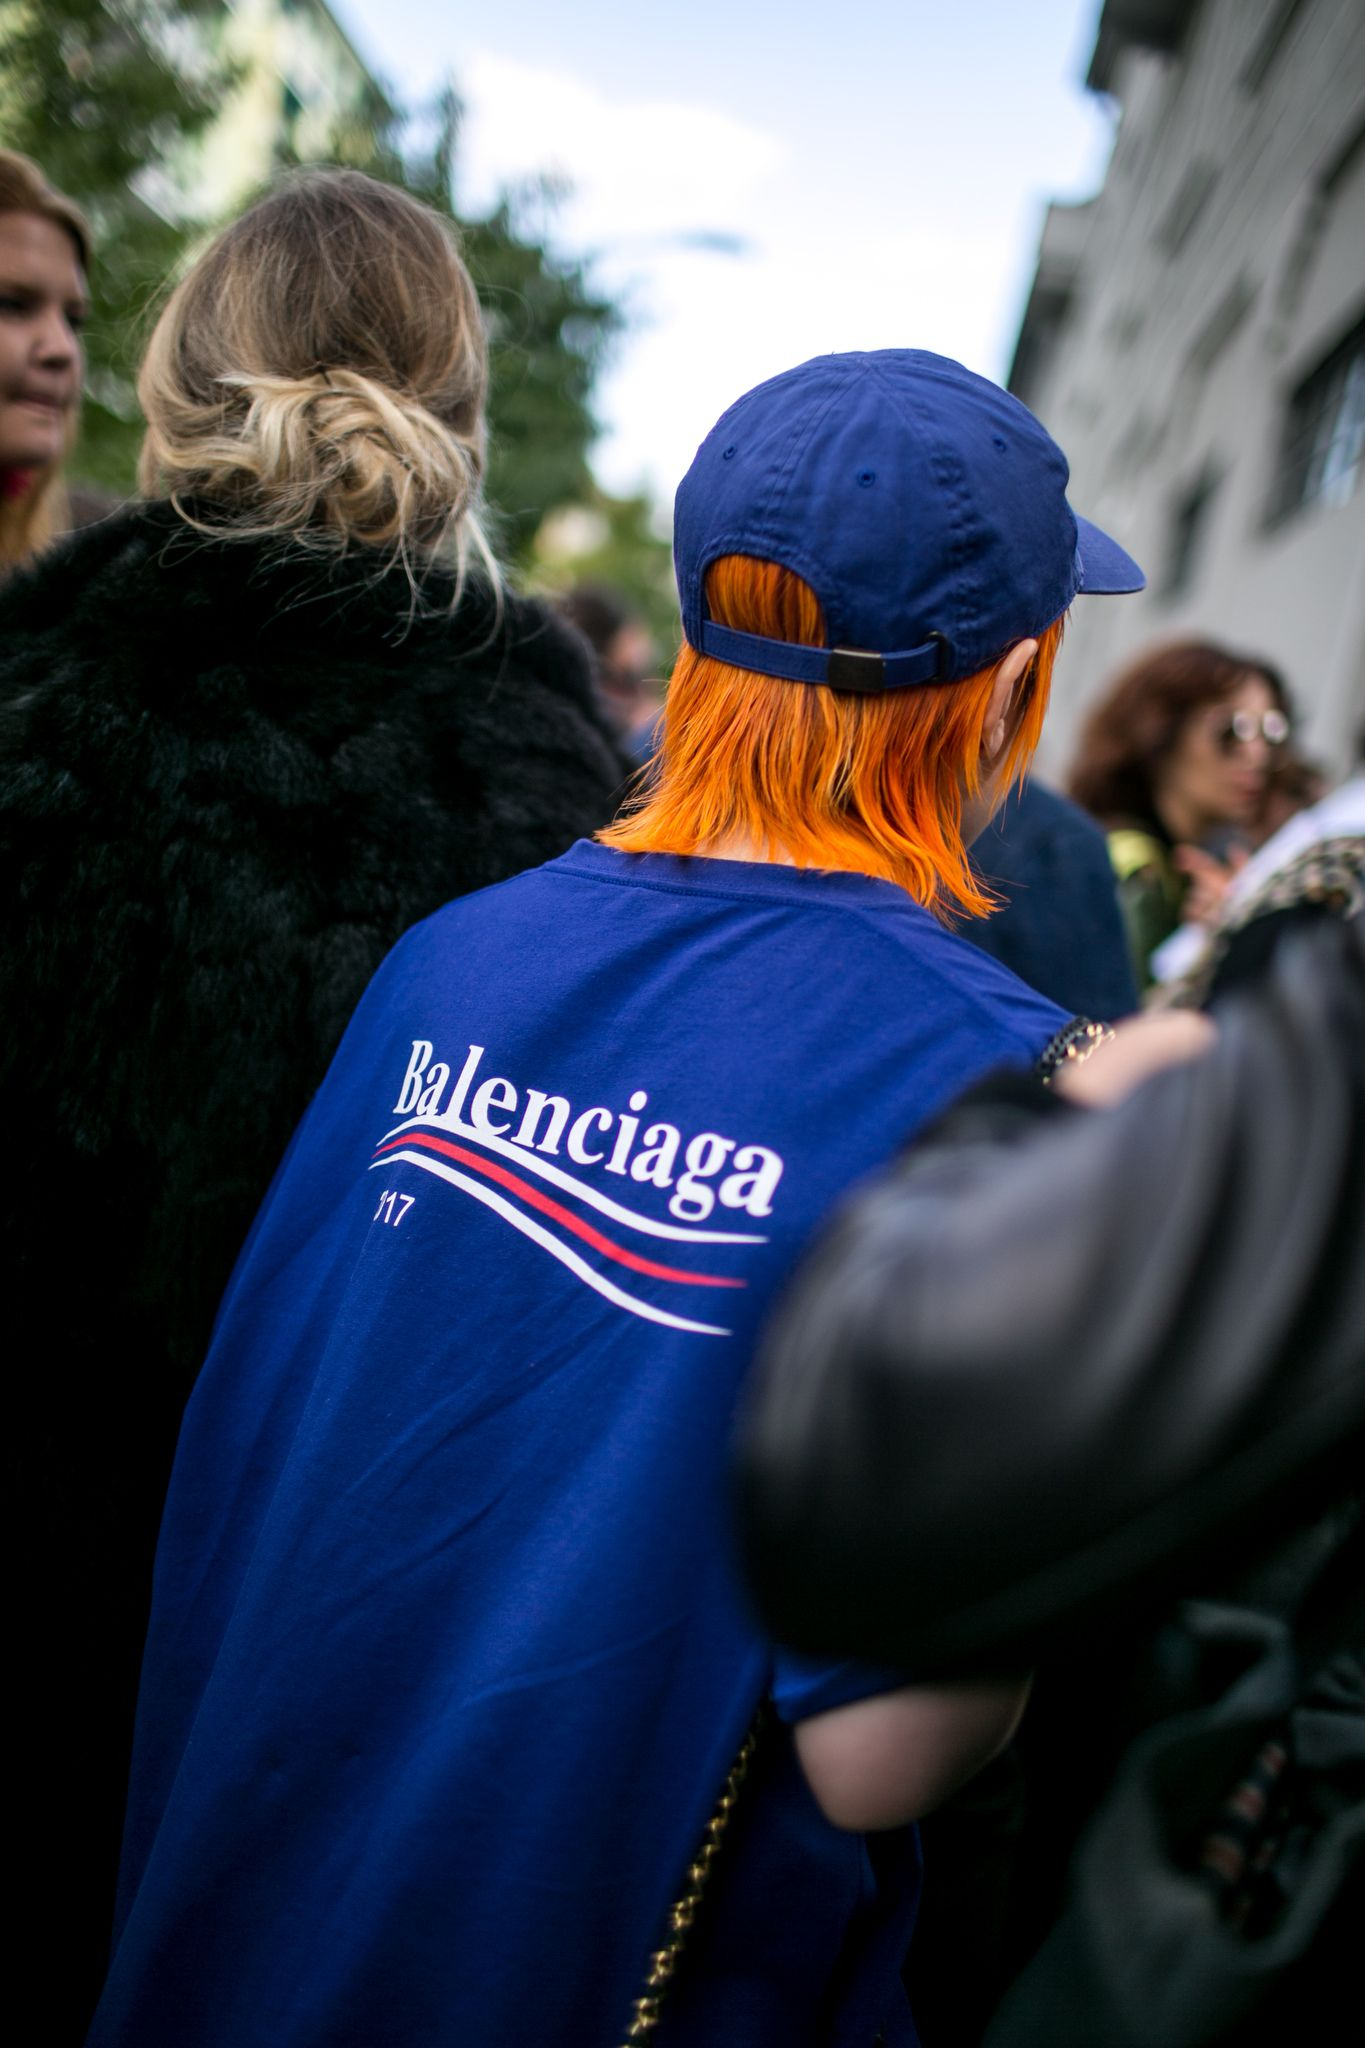 Balenciaga Logo - Balenciaga Changes Its Logo – WWD